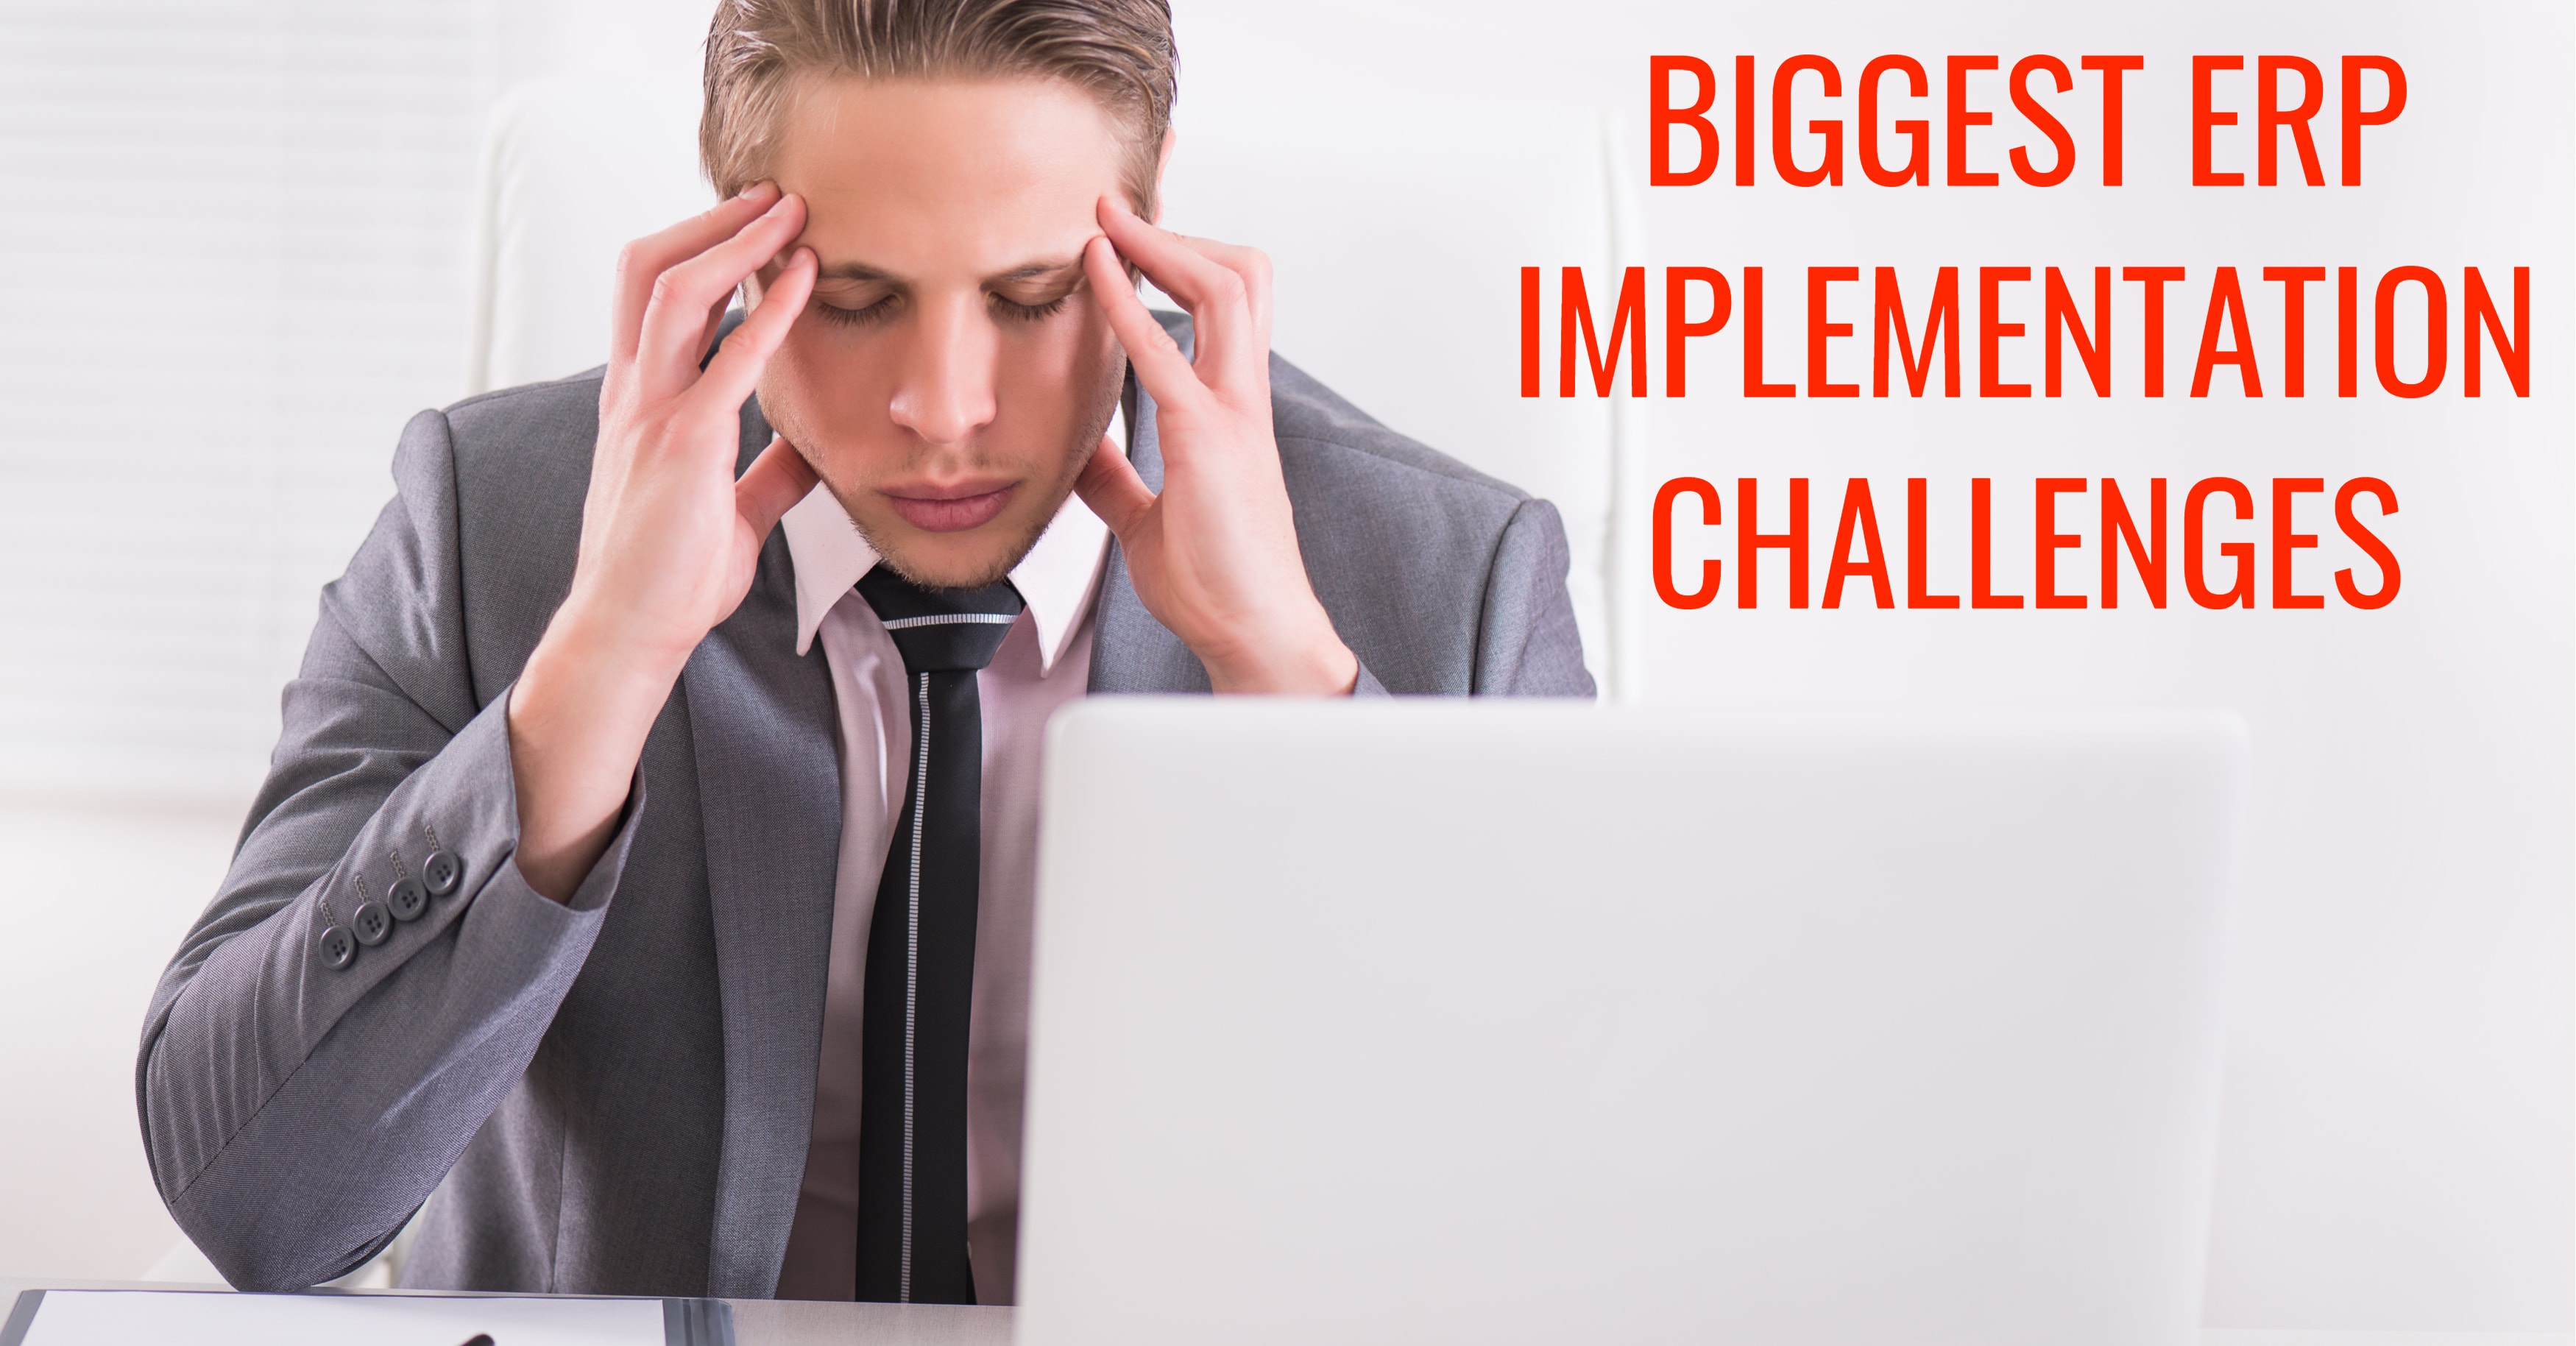 Biggest ERP Implementation Challenges